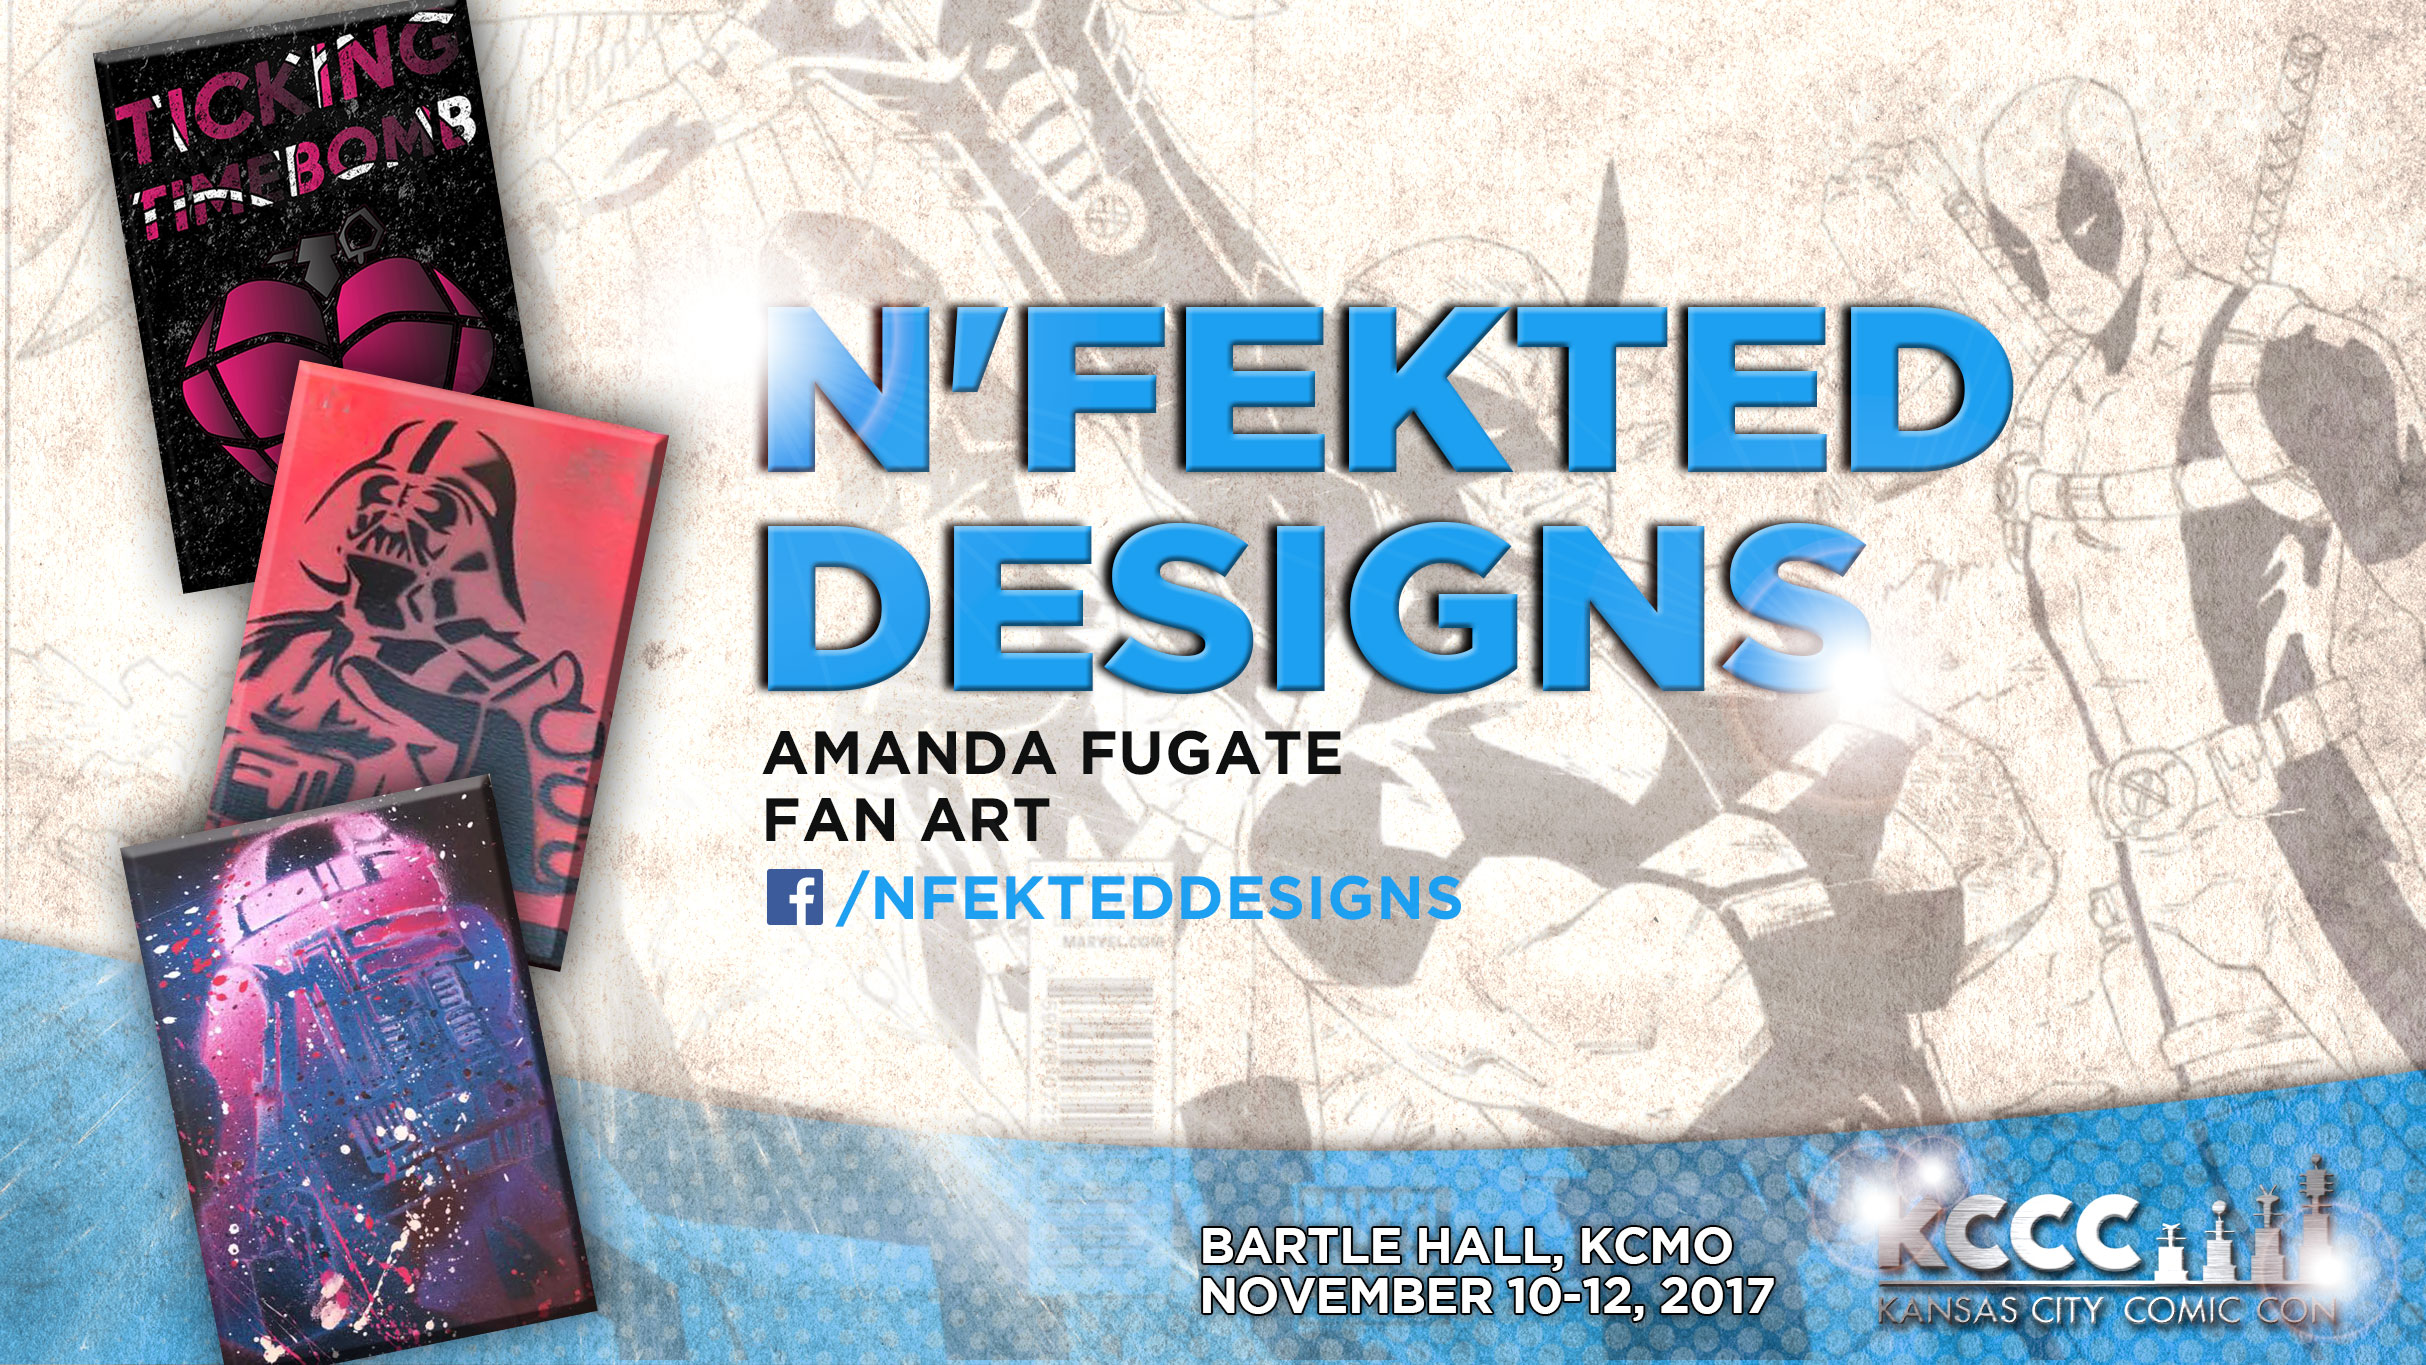 KCCC_ANNOUNCEMENT_Sketch_NfektedDesigns.jpg